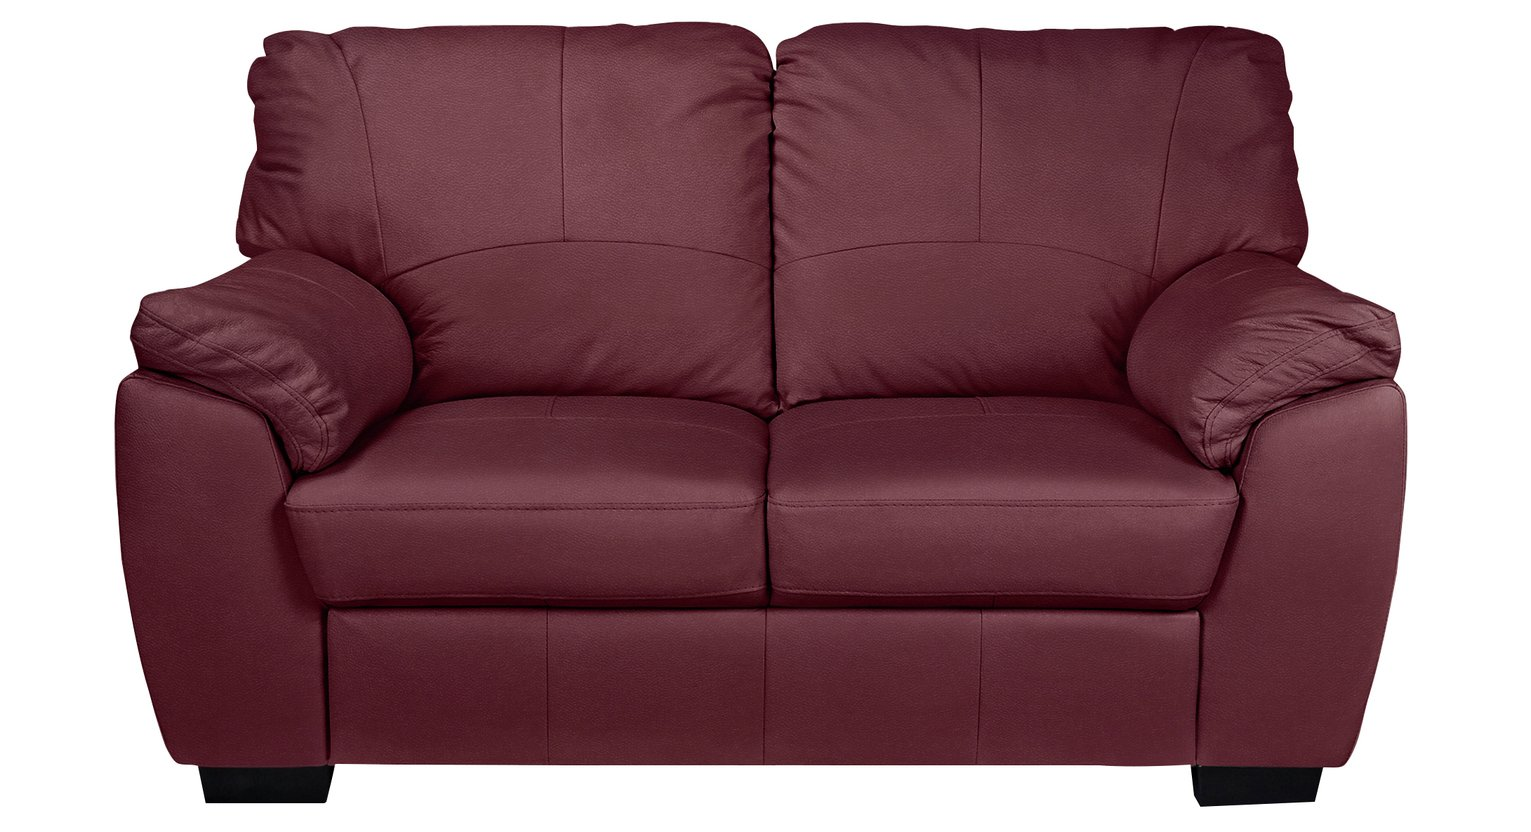 Collection Milano 2 Seater Leather Sofa   Burgundy